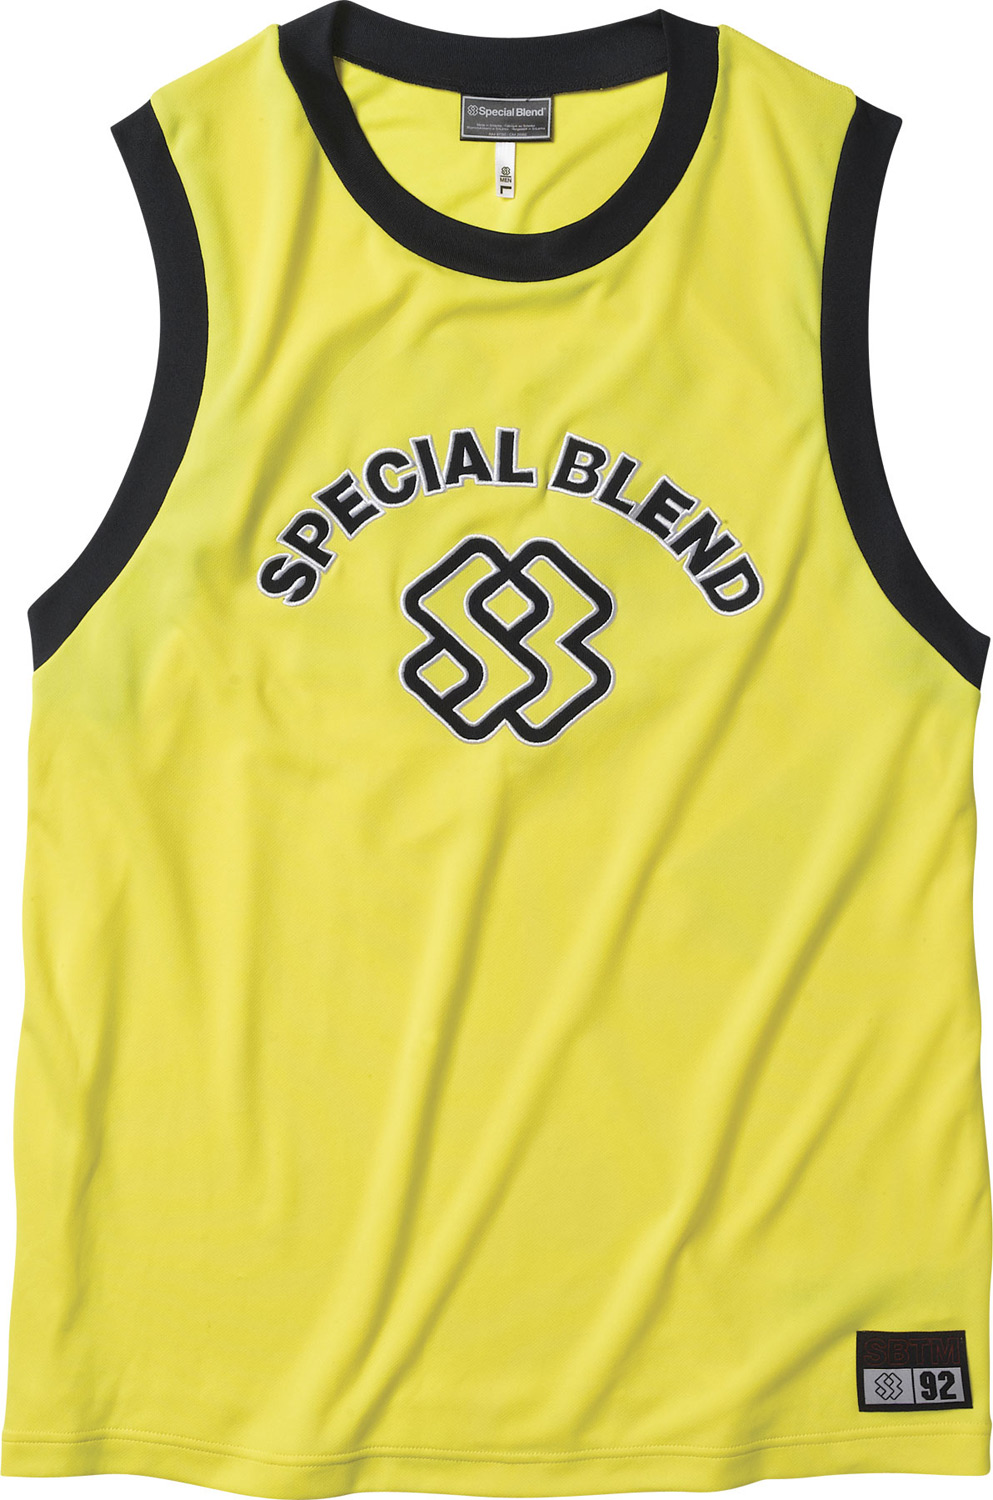 Surf Key Features of the Special Blend Frank The Tank Tank Top: Freedom Fit Wicking and Anti-Microbial Mesh body with ribbed neck and armholes Large embroidered & applique SB artwork on front and back - $21.95